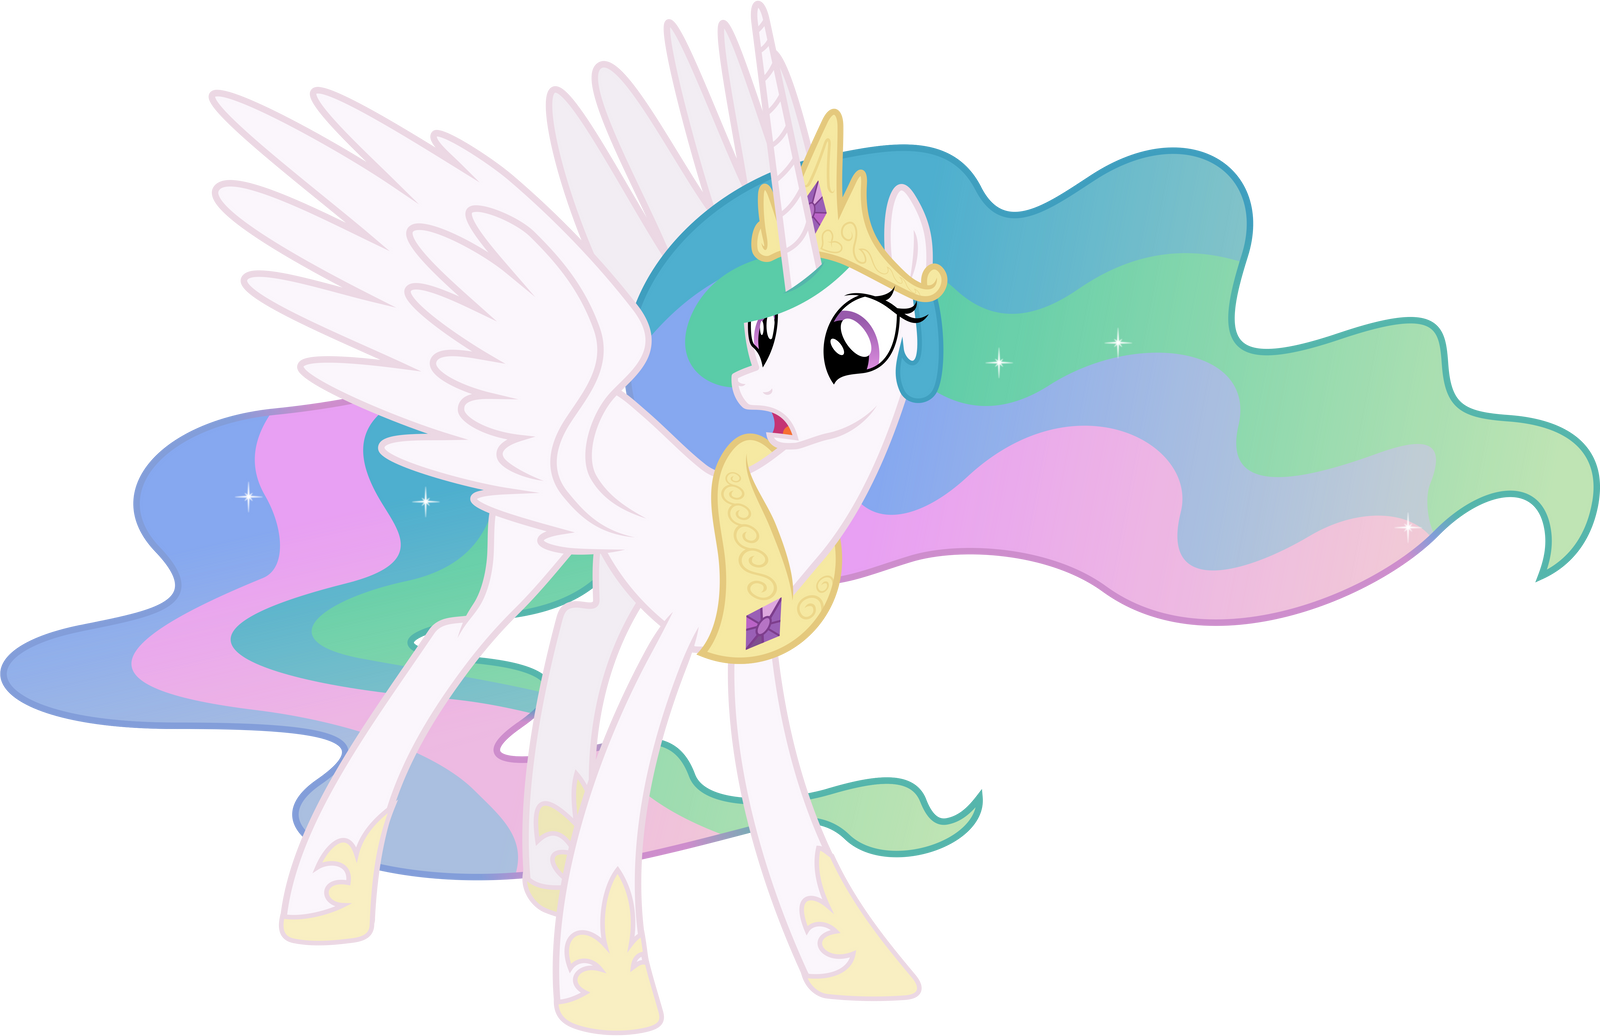 Surprised Princess Celestia by 90Sigma on DeviantArt